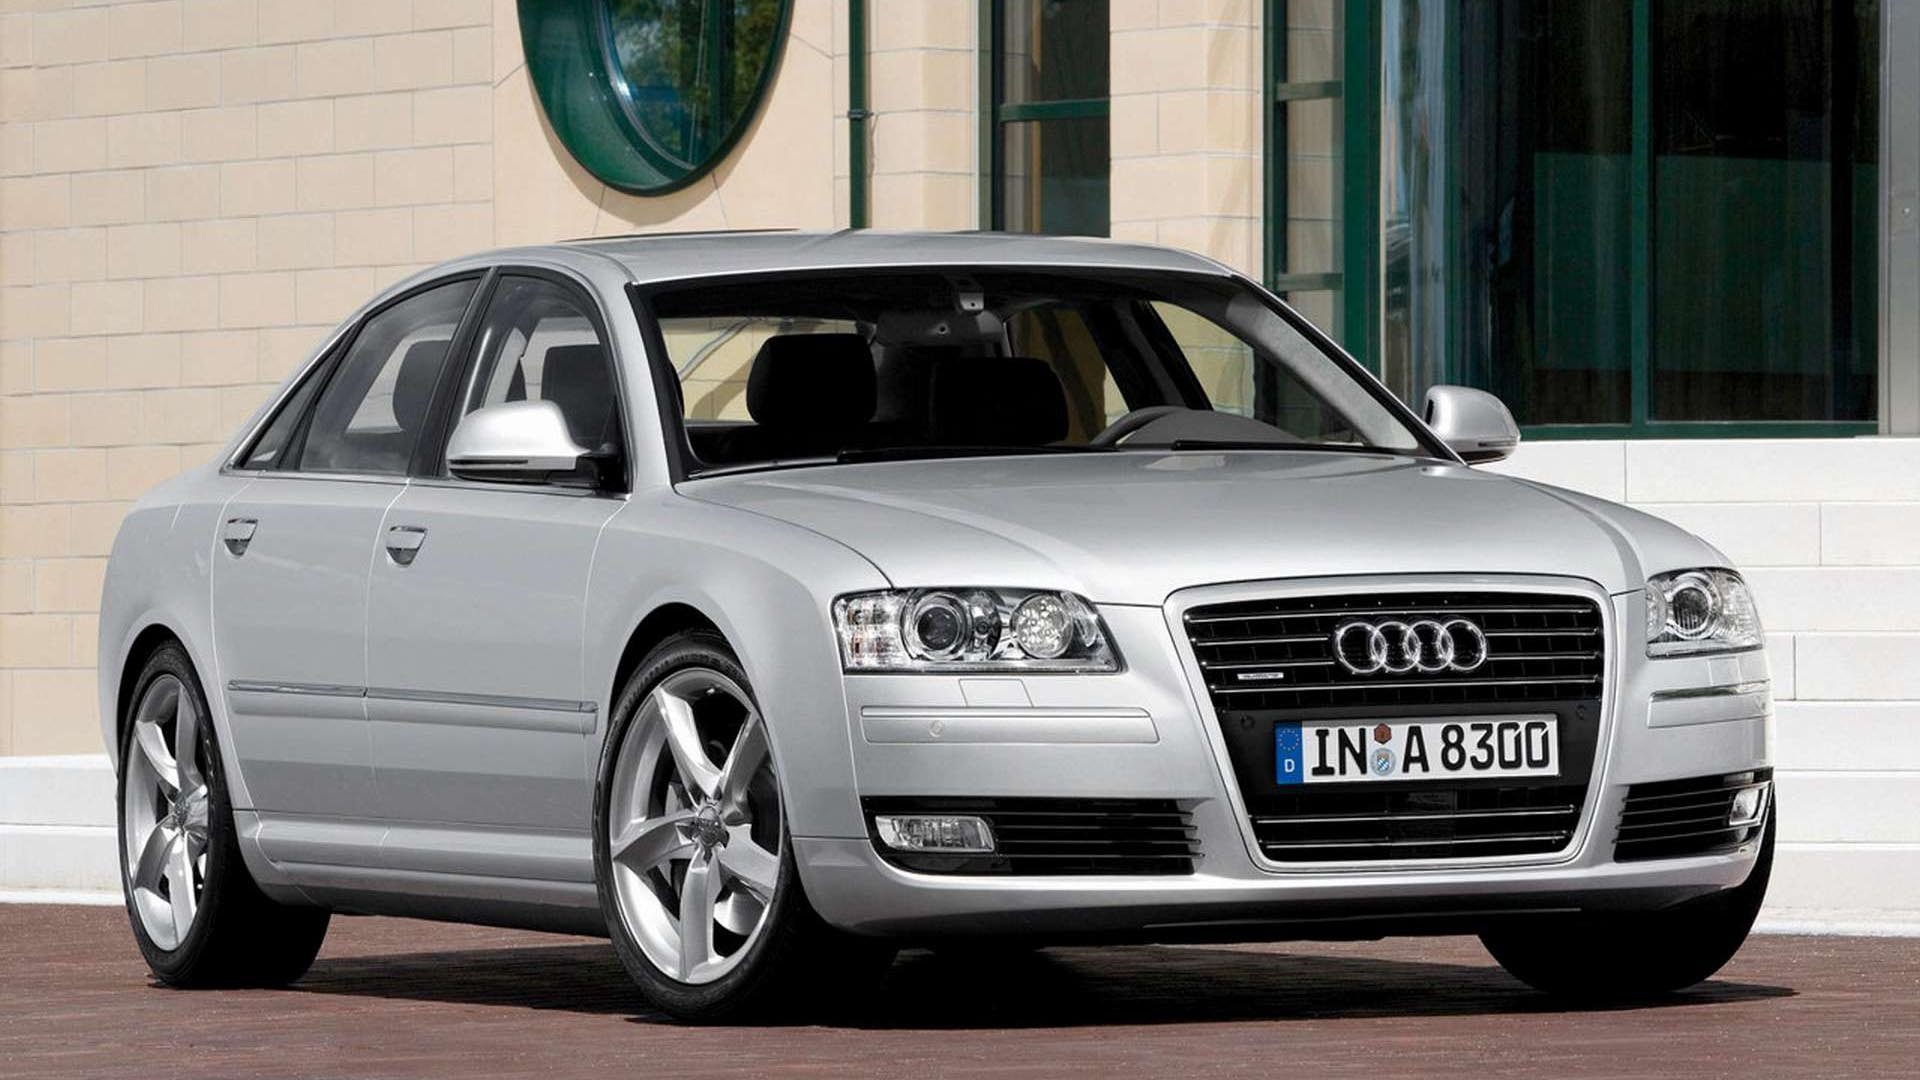 Cheap European Luxury Vehicles Audi A8 front view